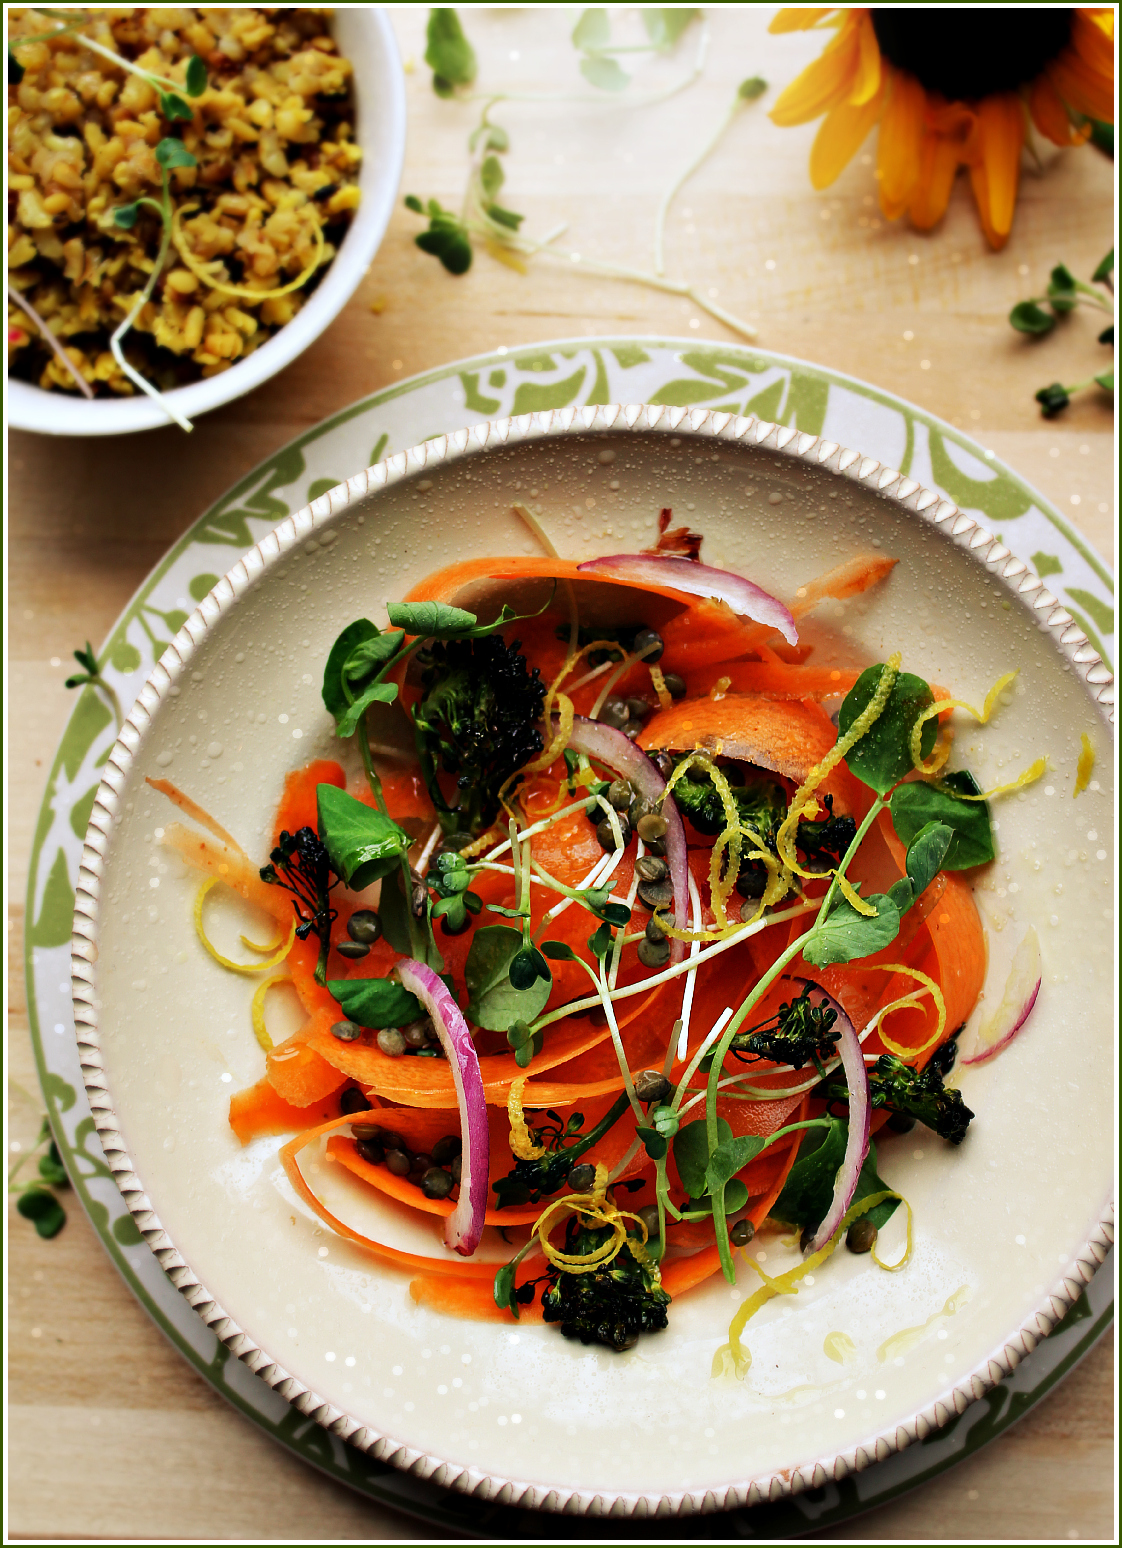 Carrot Salad with Broccoli and French Lentils by Dena T Bray